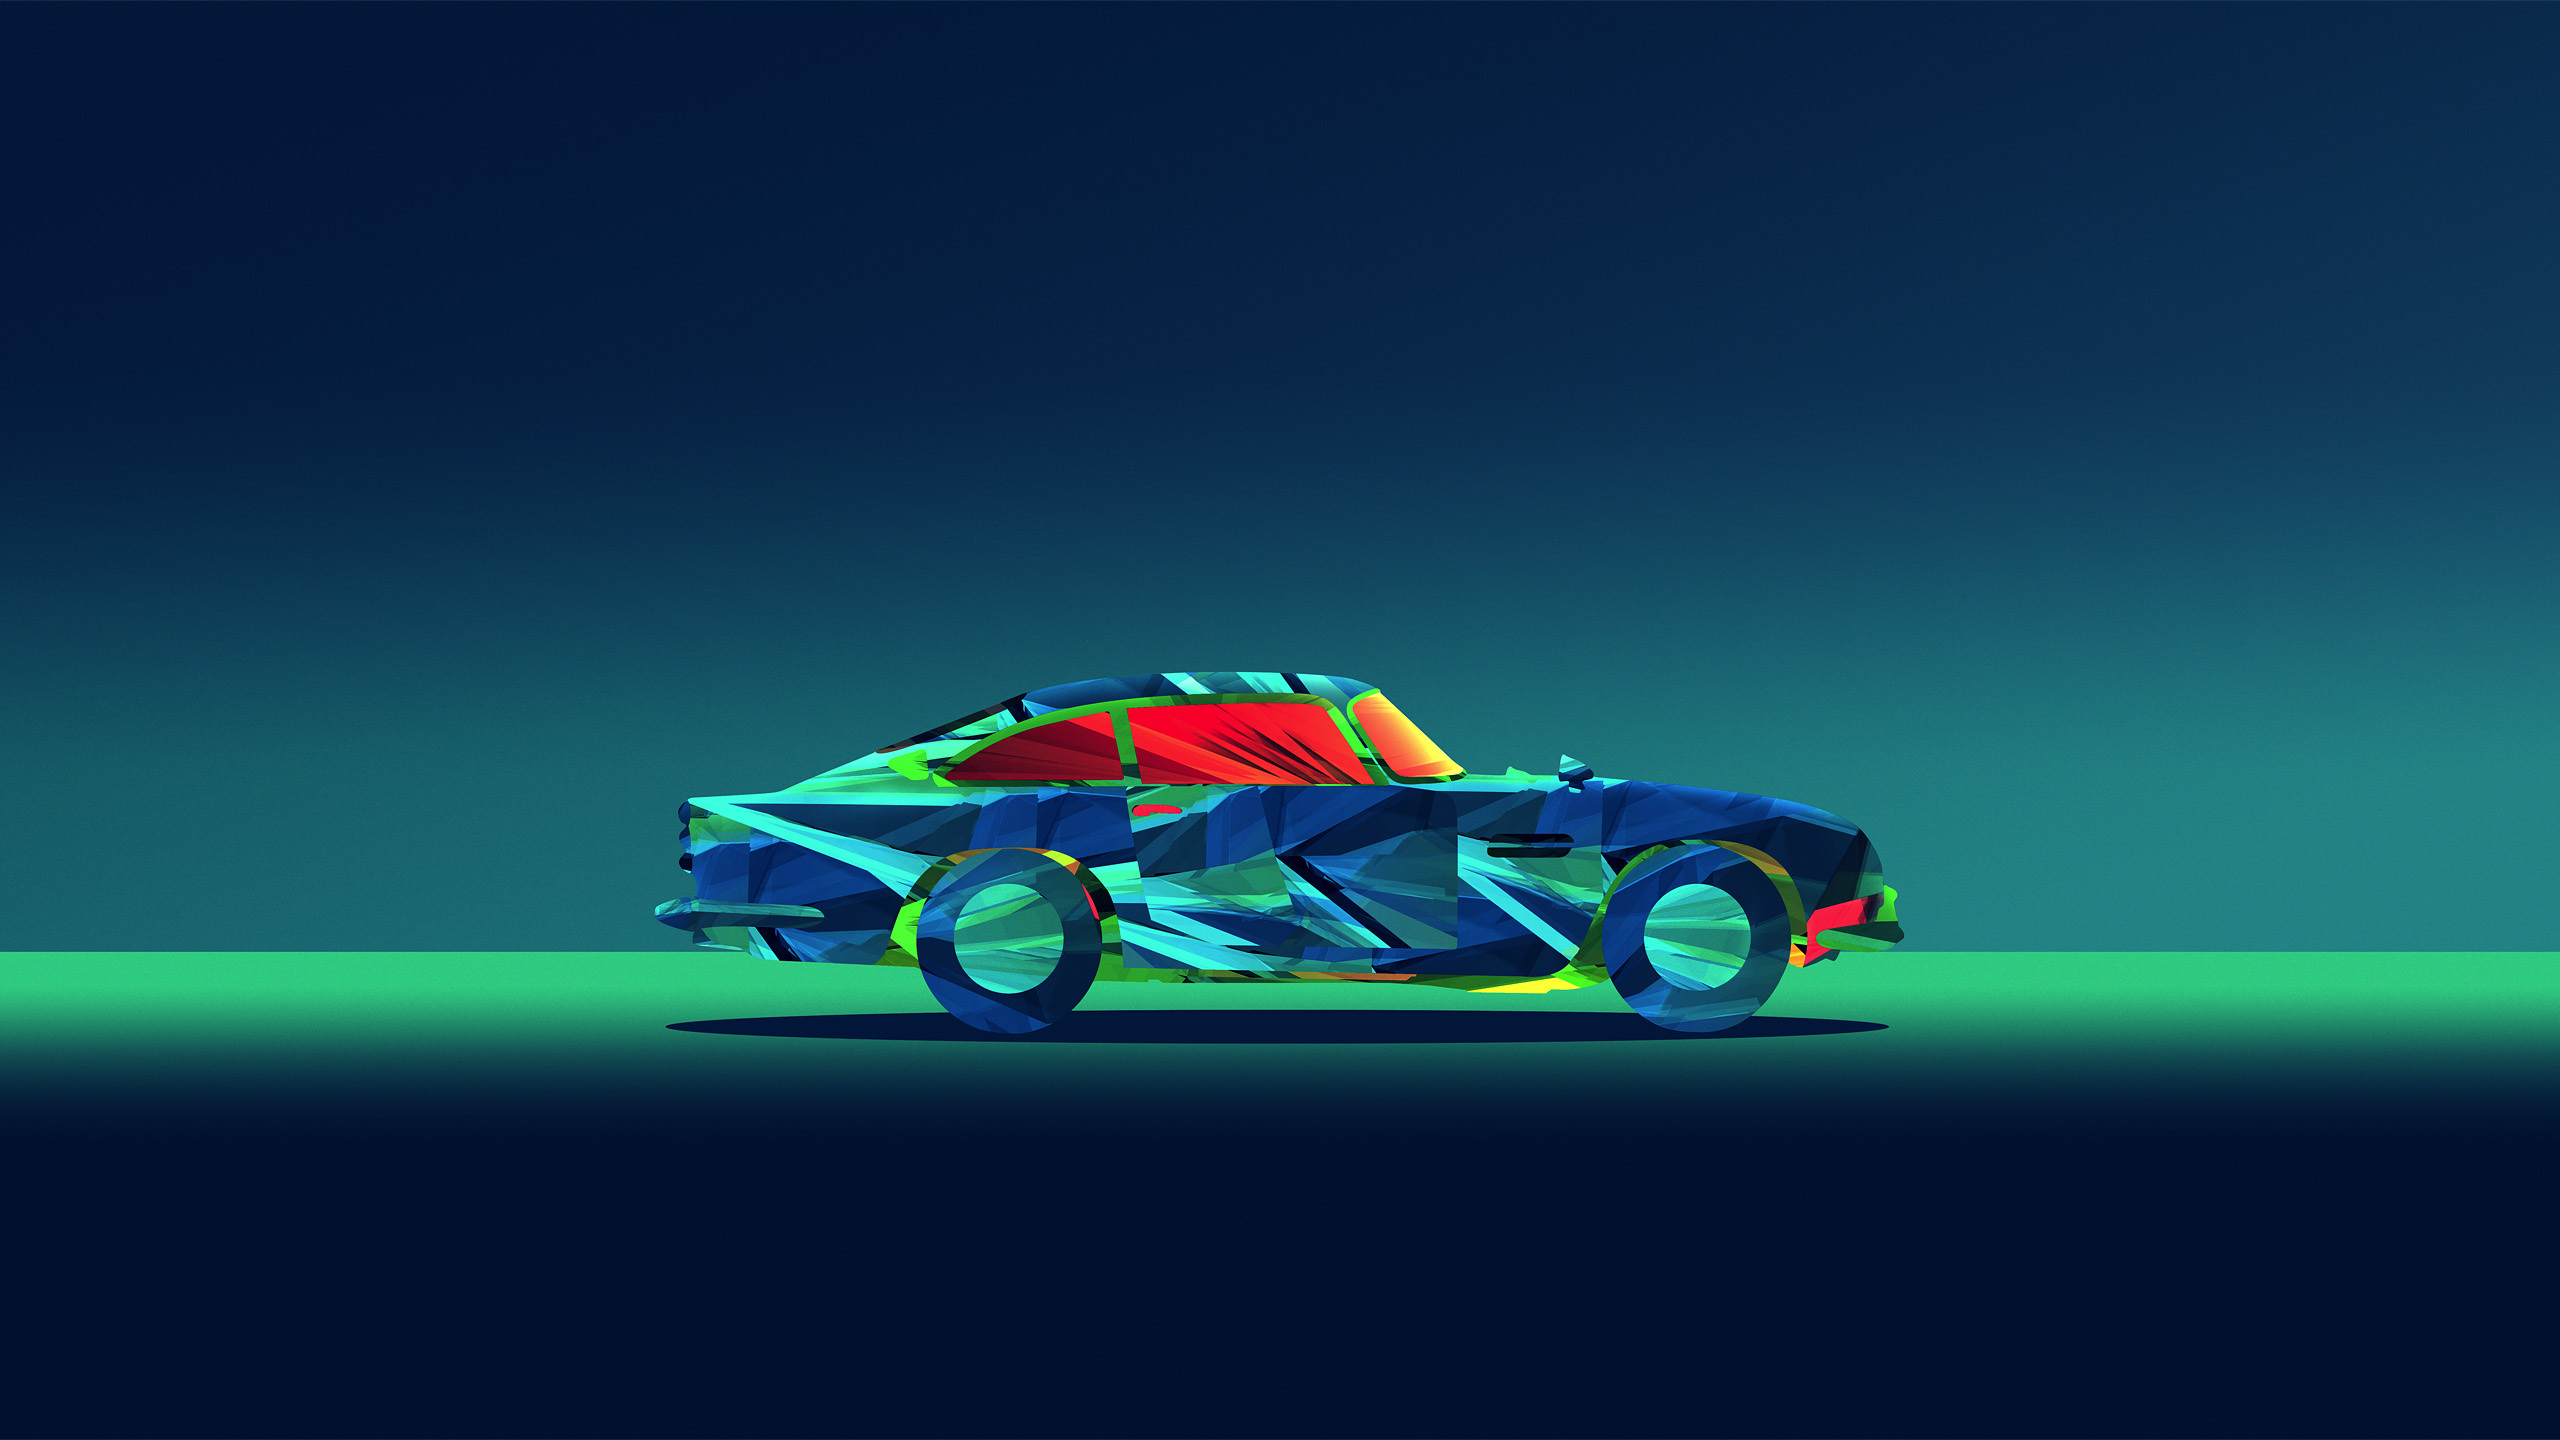 автомобили графика абстракция свет cars graphics abstraction light  № 2652845  скачать